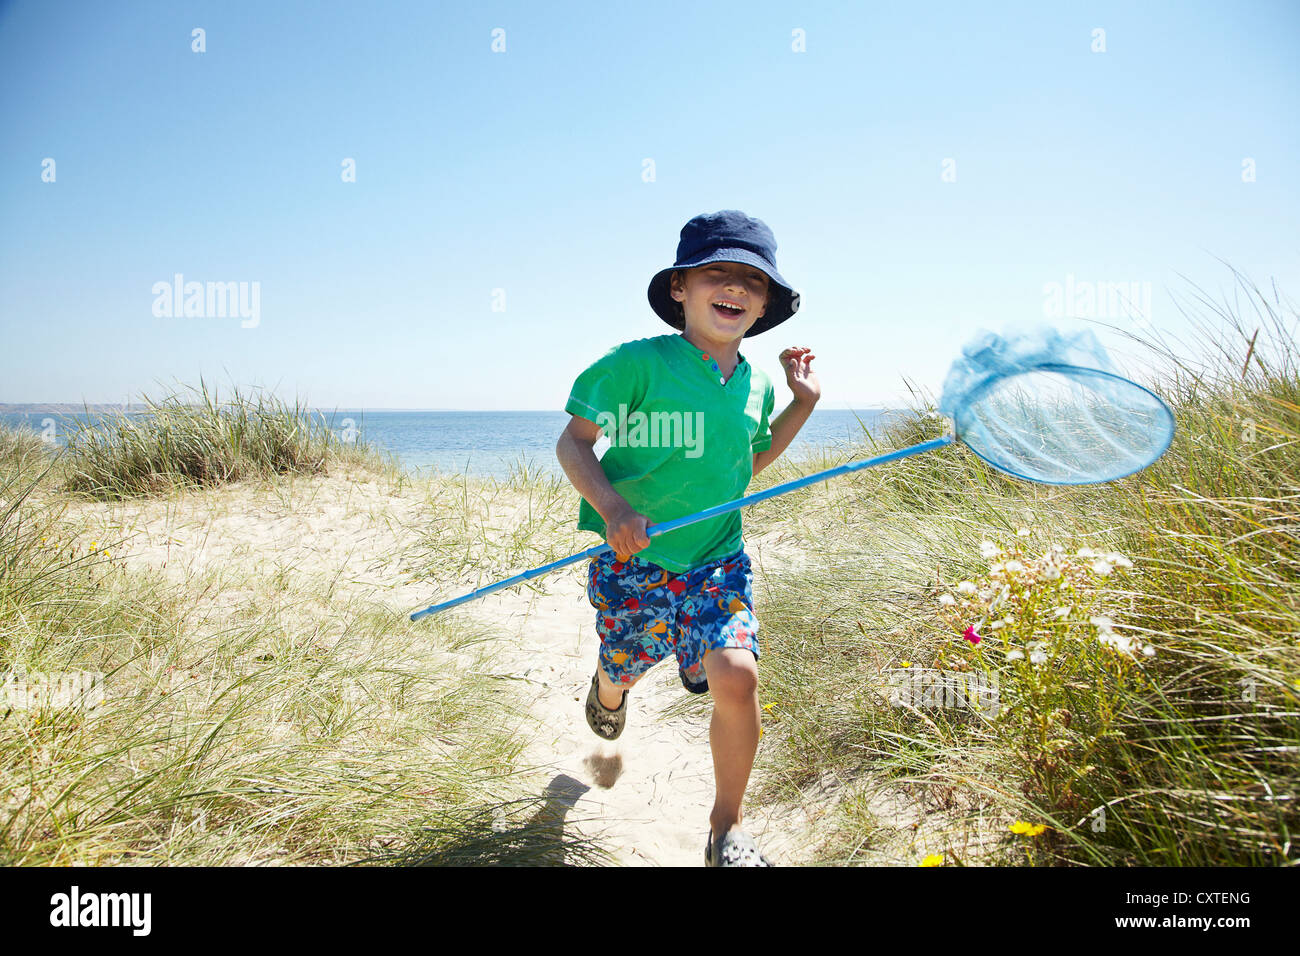 Boy carrying fishing net on beach - Stock Image